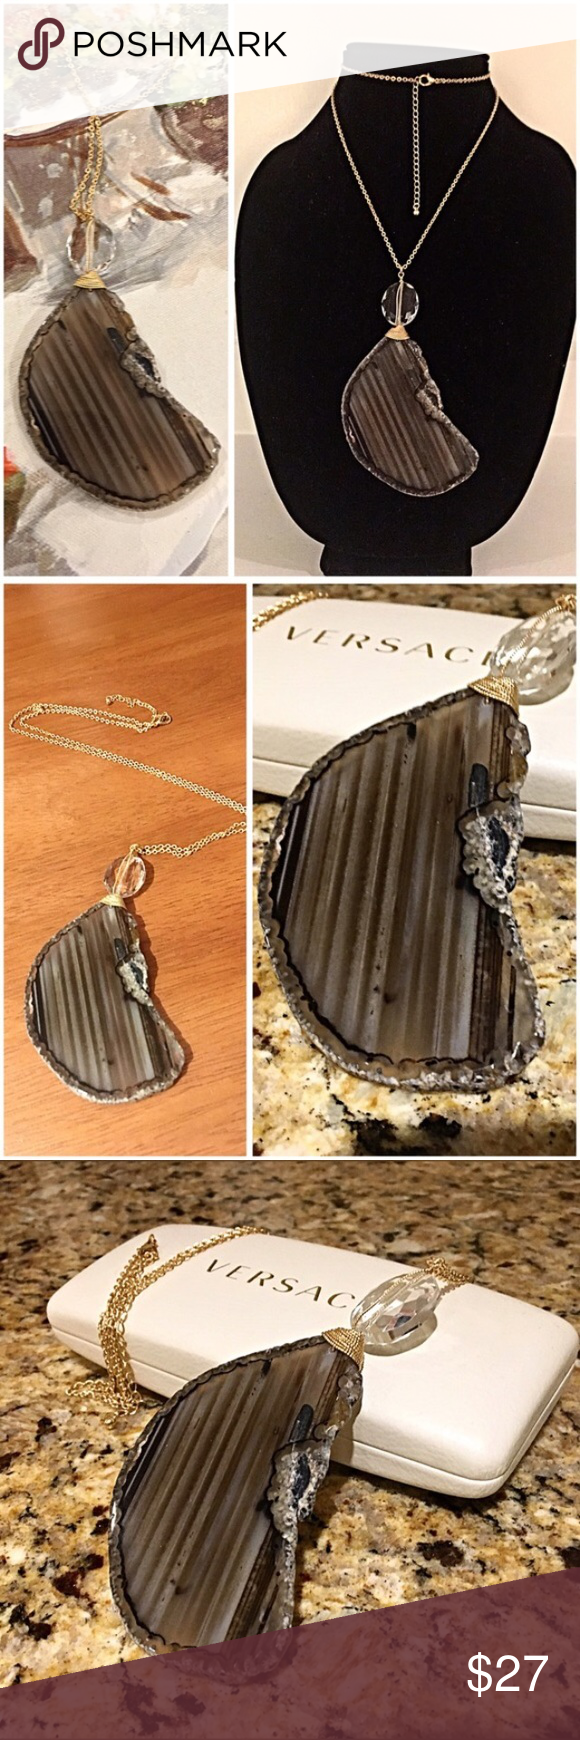 Nwt agate taupe brown swirl mix necklace nwt hand pictures